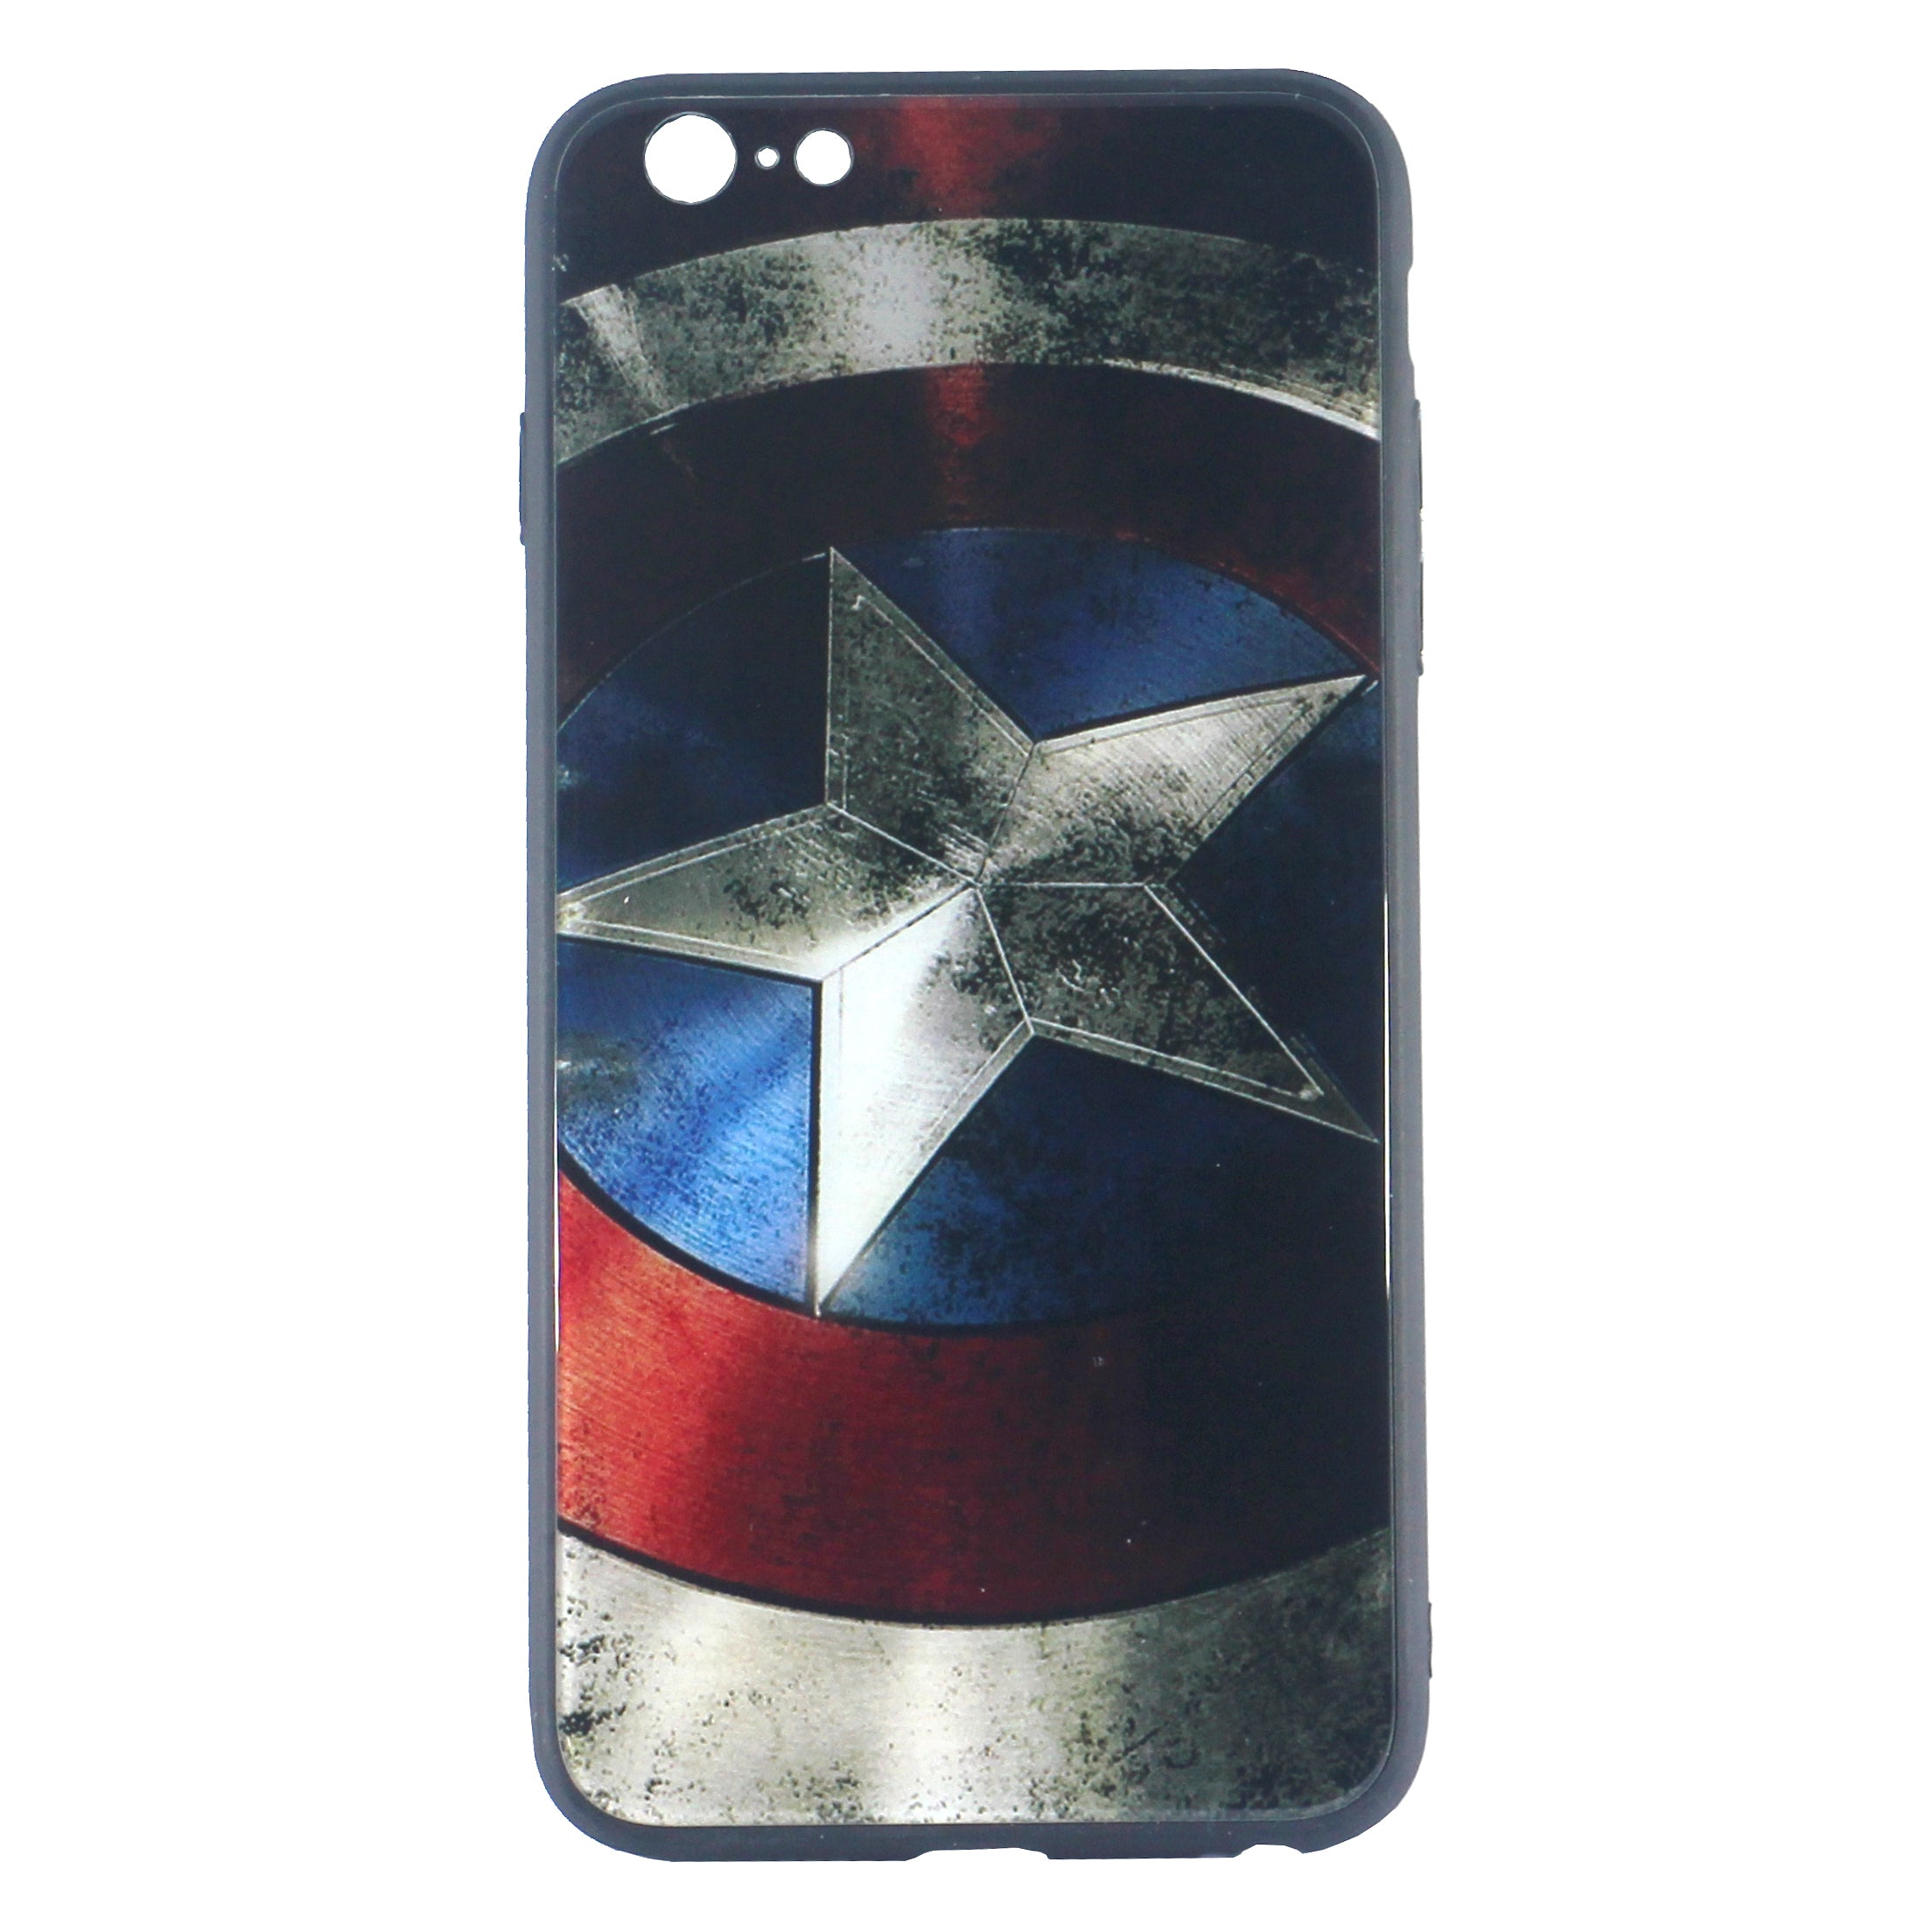 Captain America Tempered Glass Case (iPhone 6)